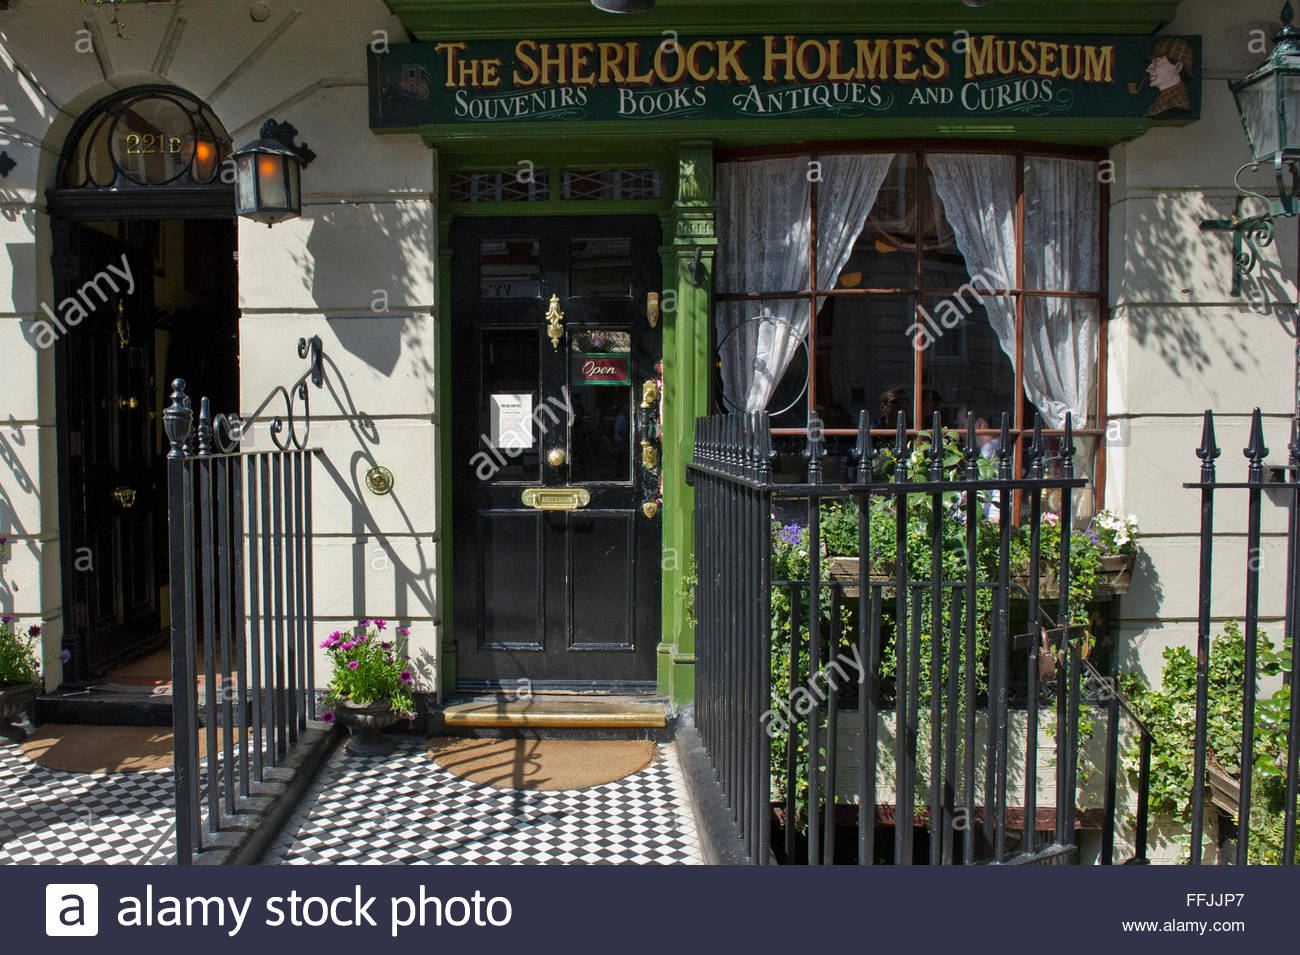 Sherlock Holmes Museum London, The exterior of the Sherlock Holmes Museum in London, United ...